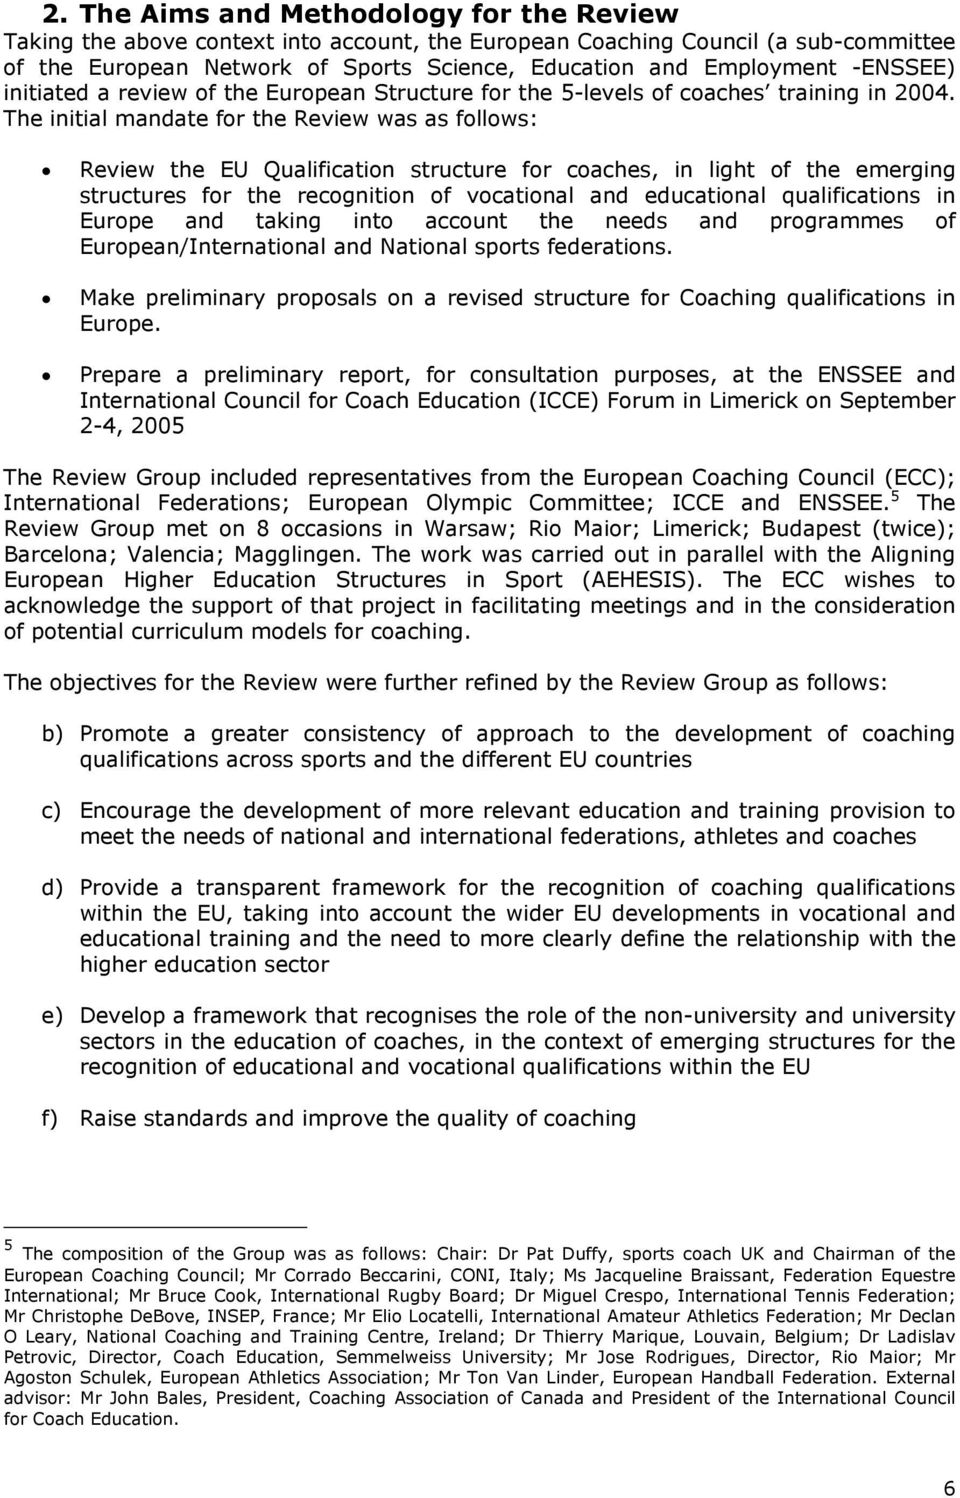 The initial mandate for the Review was as follows: Review the EU Qualification structure for coaches, in light of the emerging structures for the recognition of vocational and educational